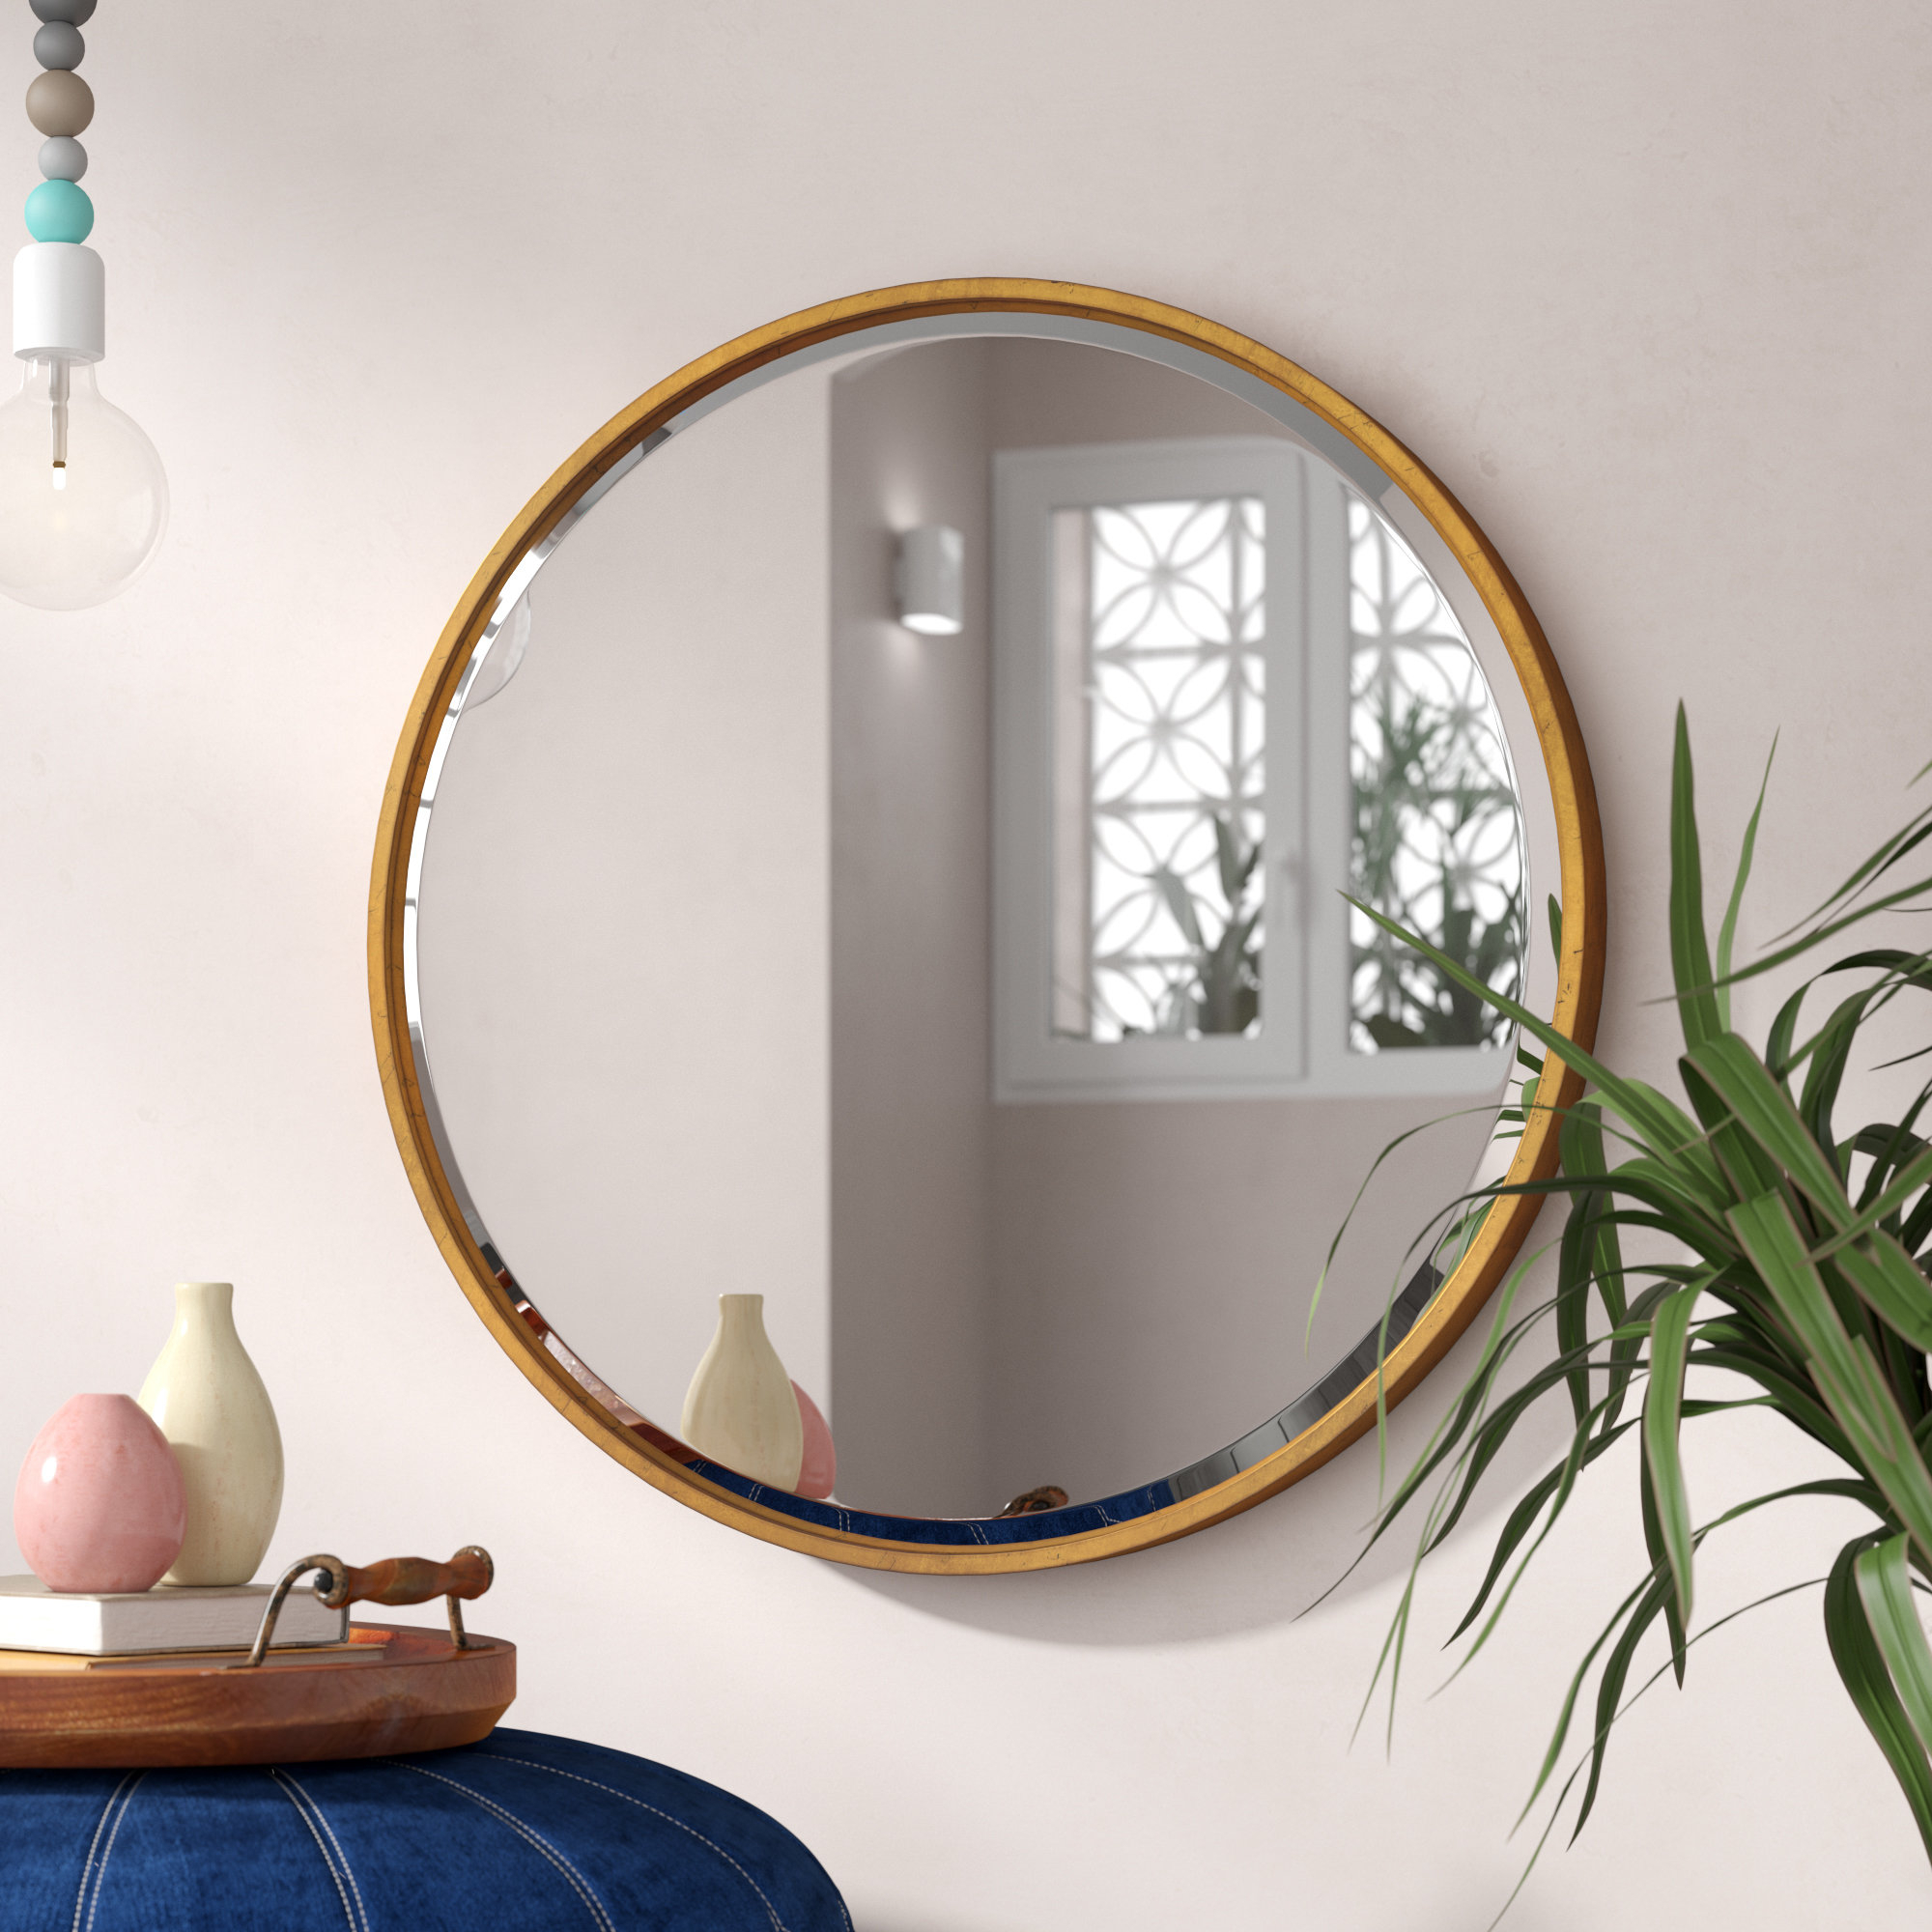 Jamie Modern & Contemporary Beveled Wall Mirror throughout Modern & Contemporary Beveled Wall Mirrors (Image 17 of 30)